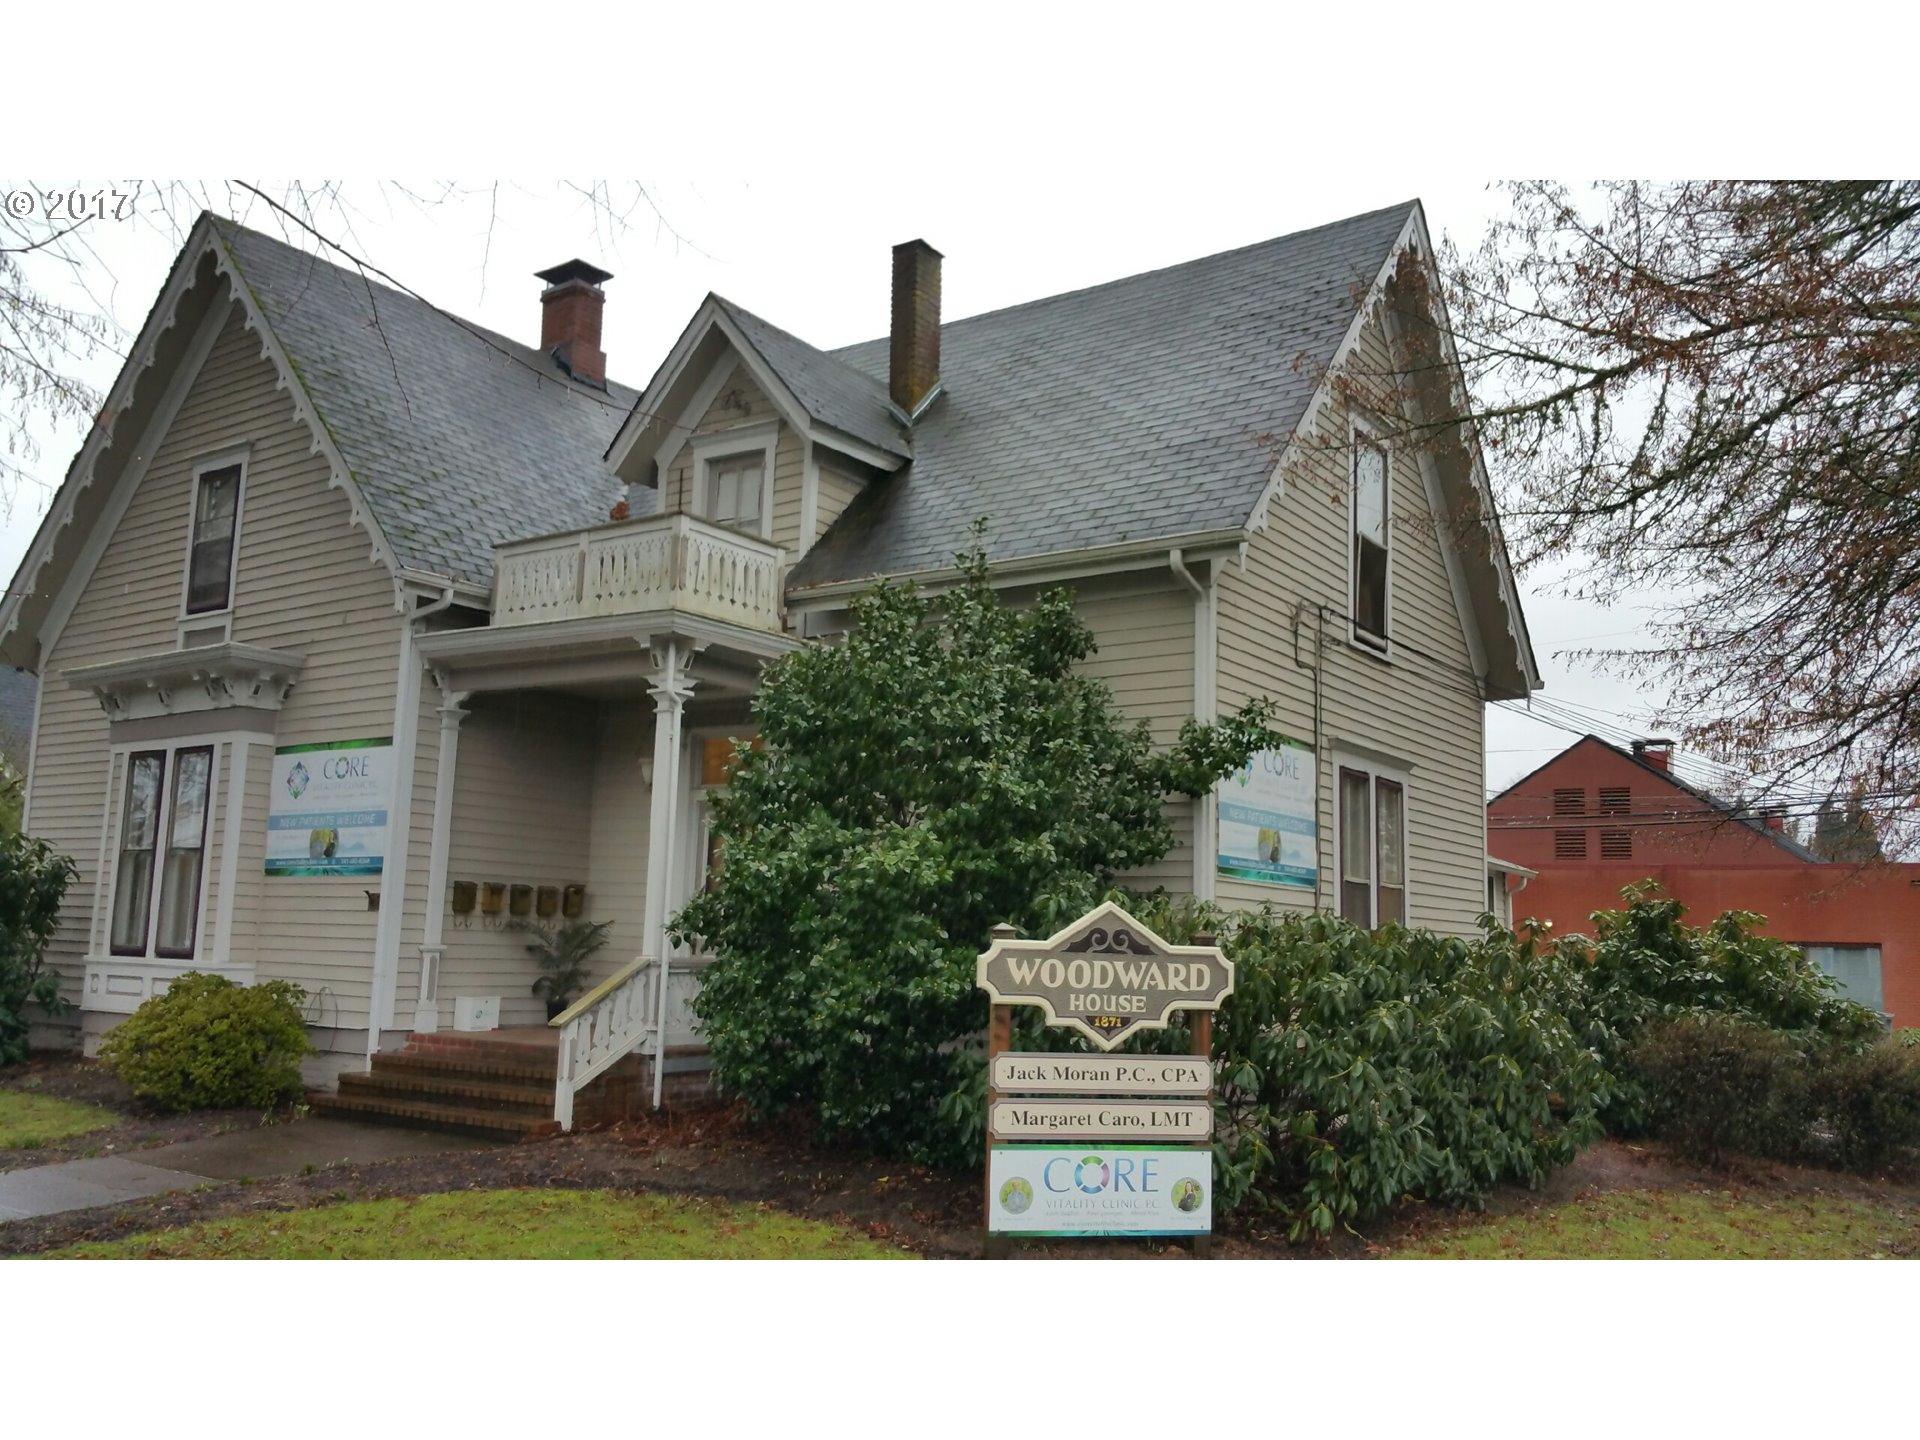 442 NW 4TH ST, Corvallis, OR 97330